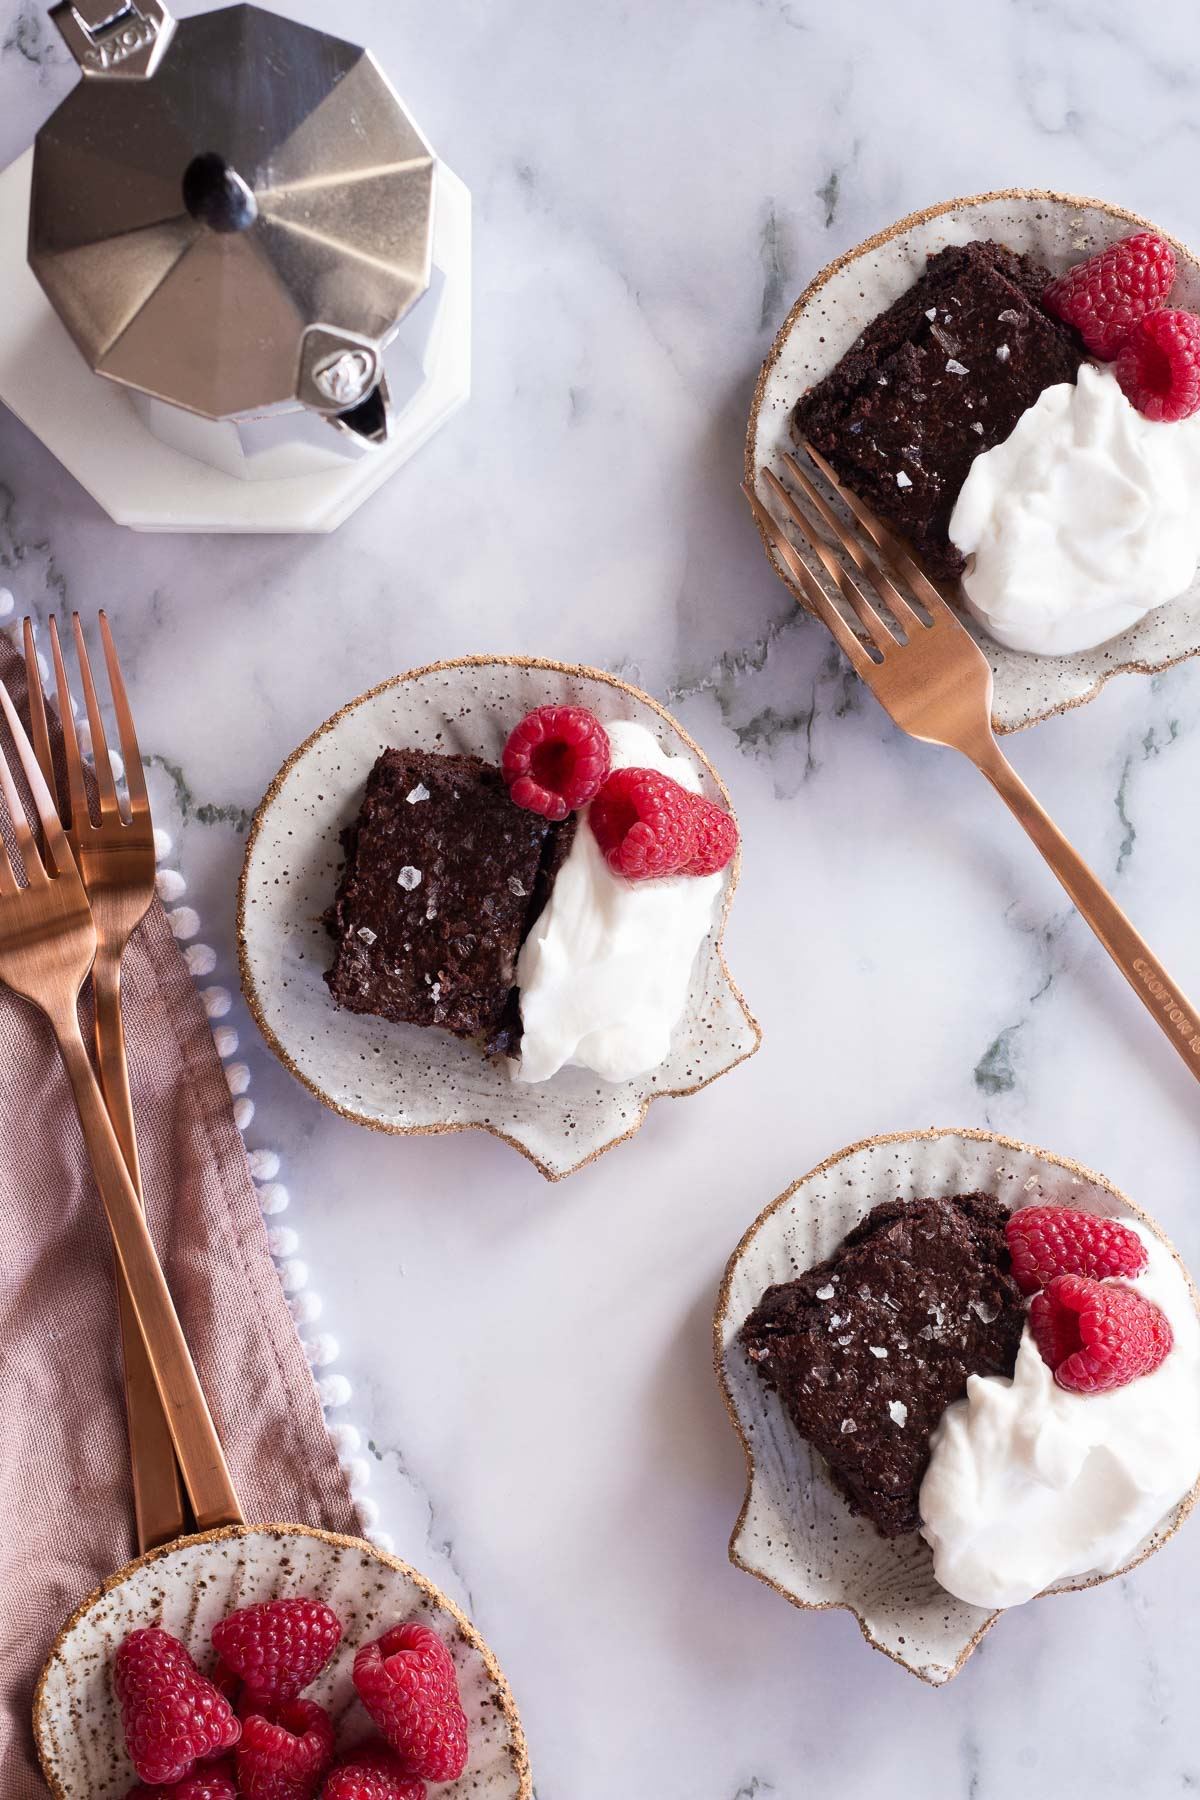 Miracle Flourless Brownies cut and served with coffee, cream and raspberries